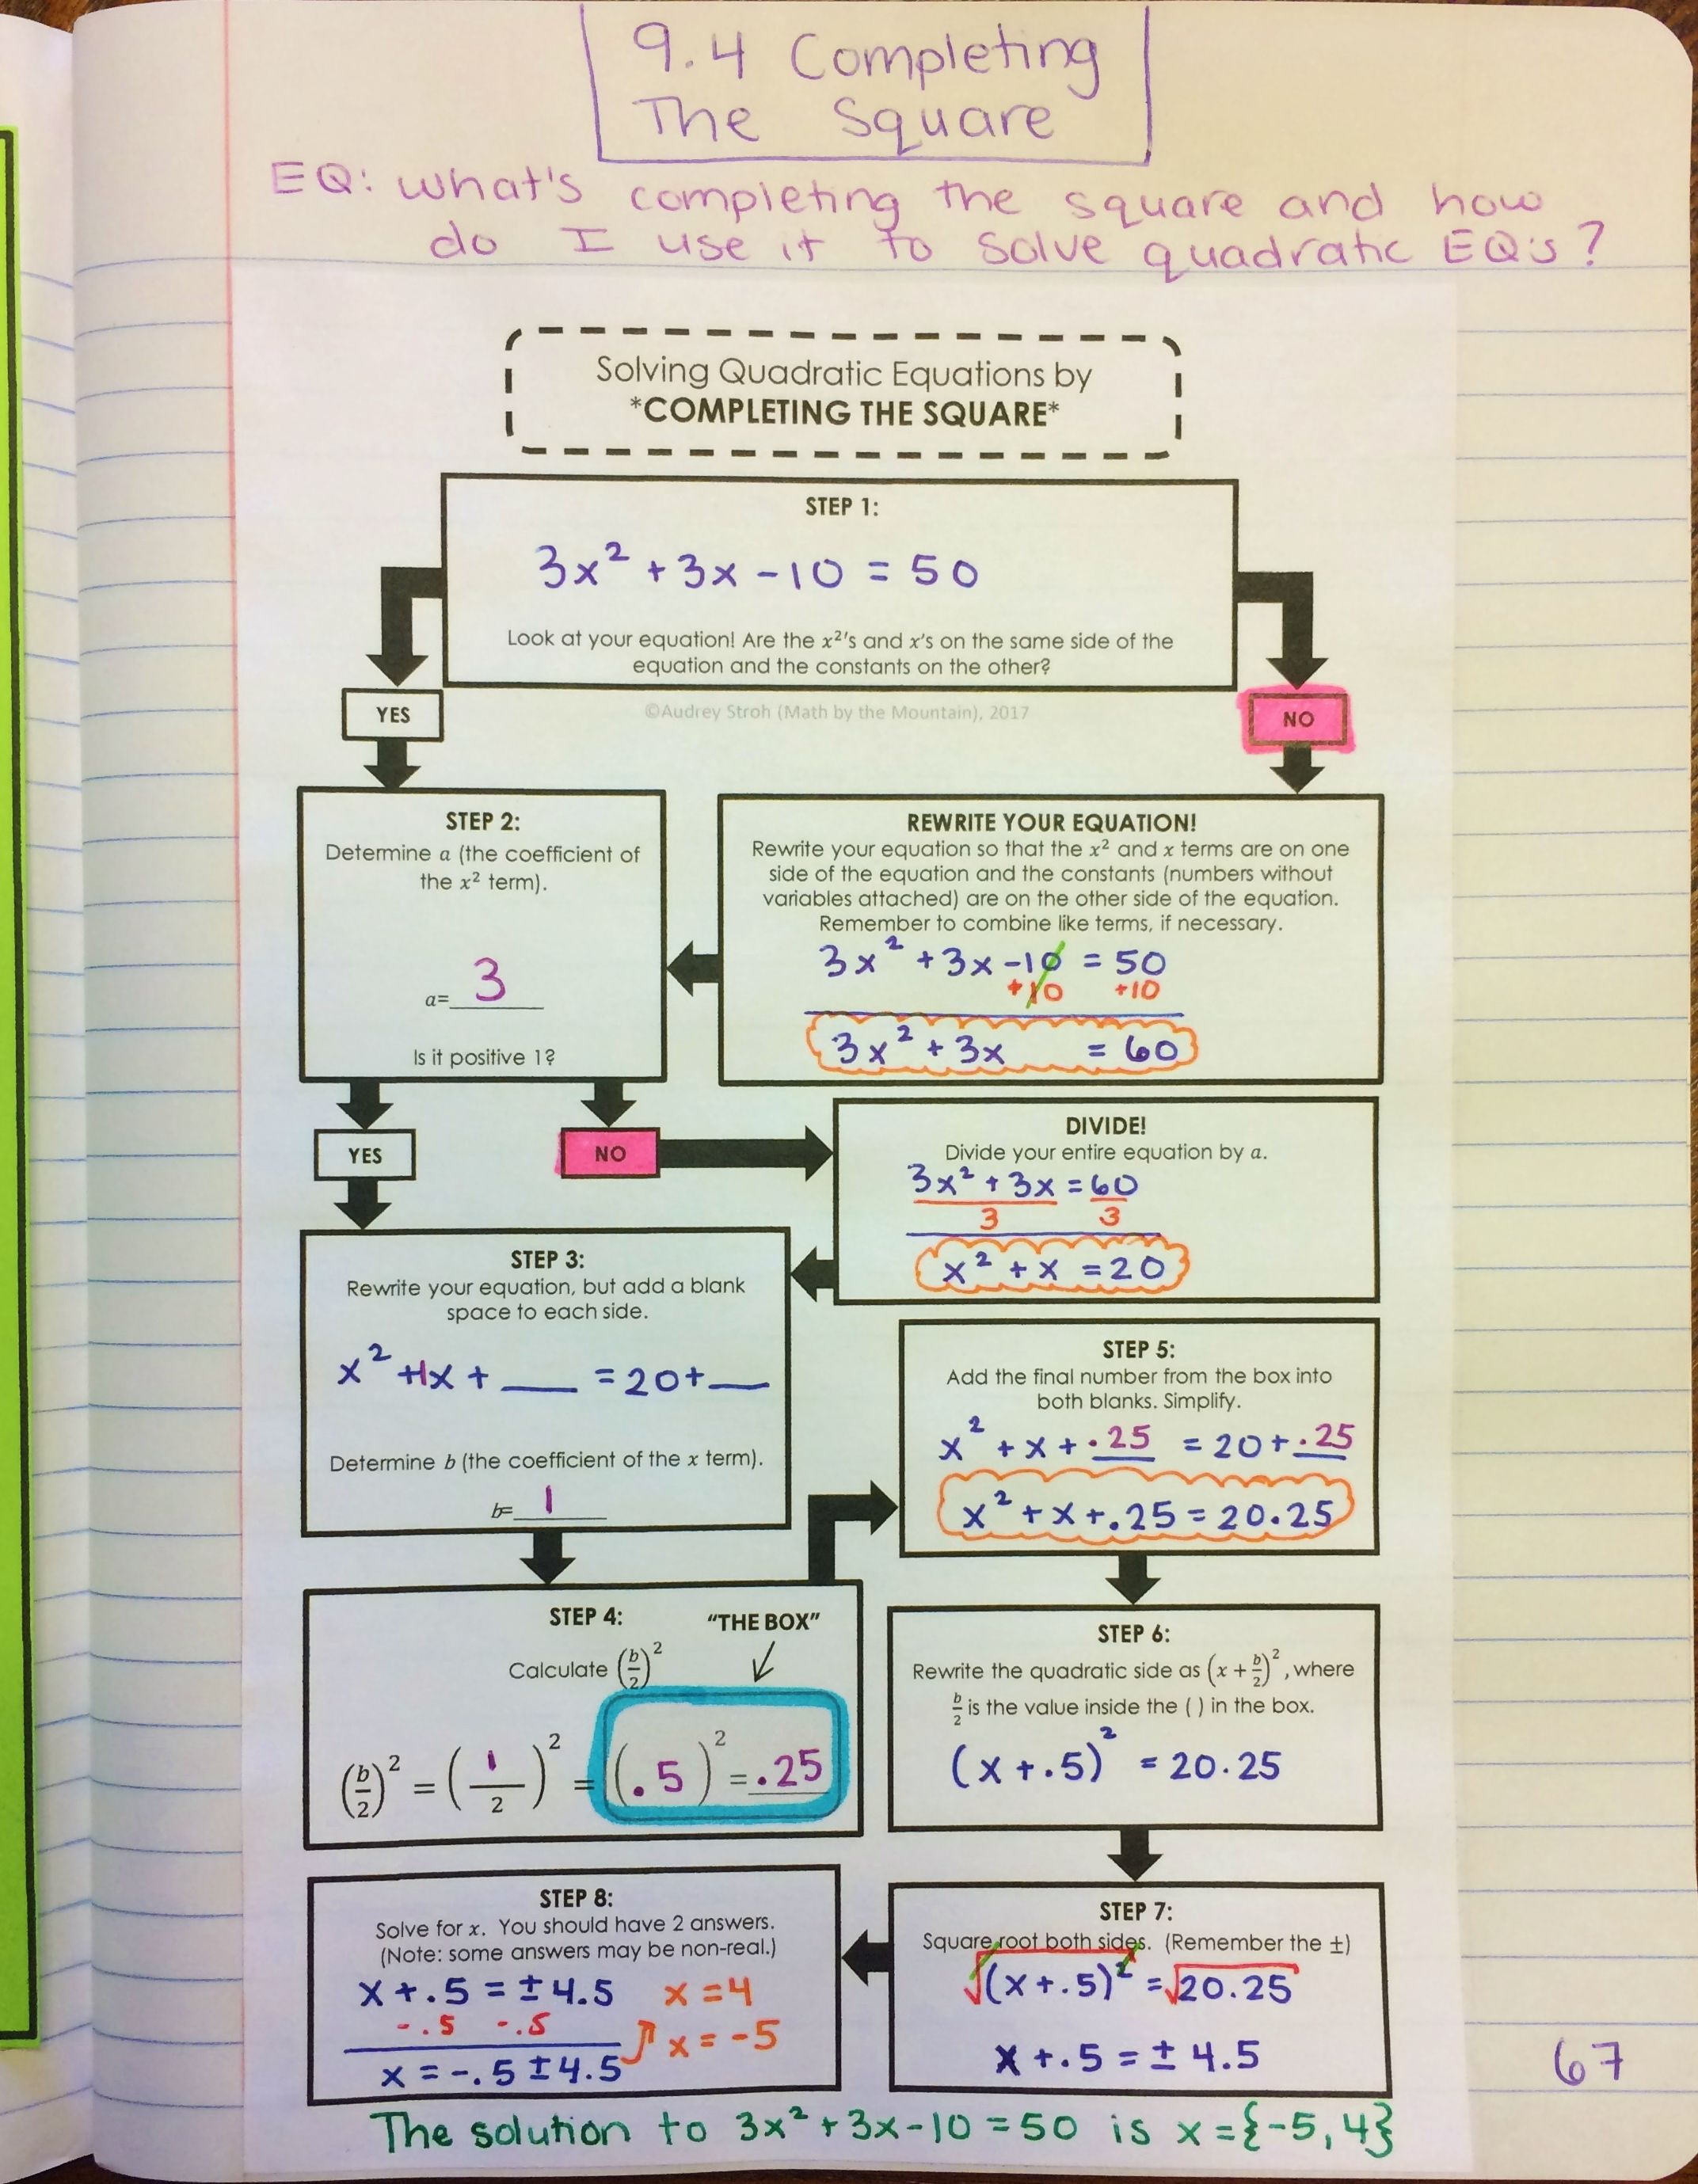 Solving Quadratic Equations By Completing The Square Flowchart